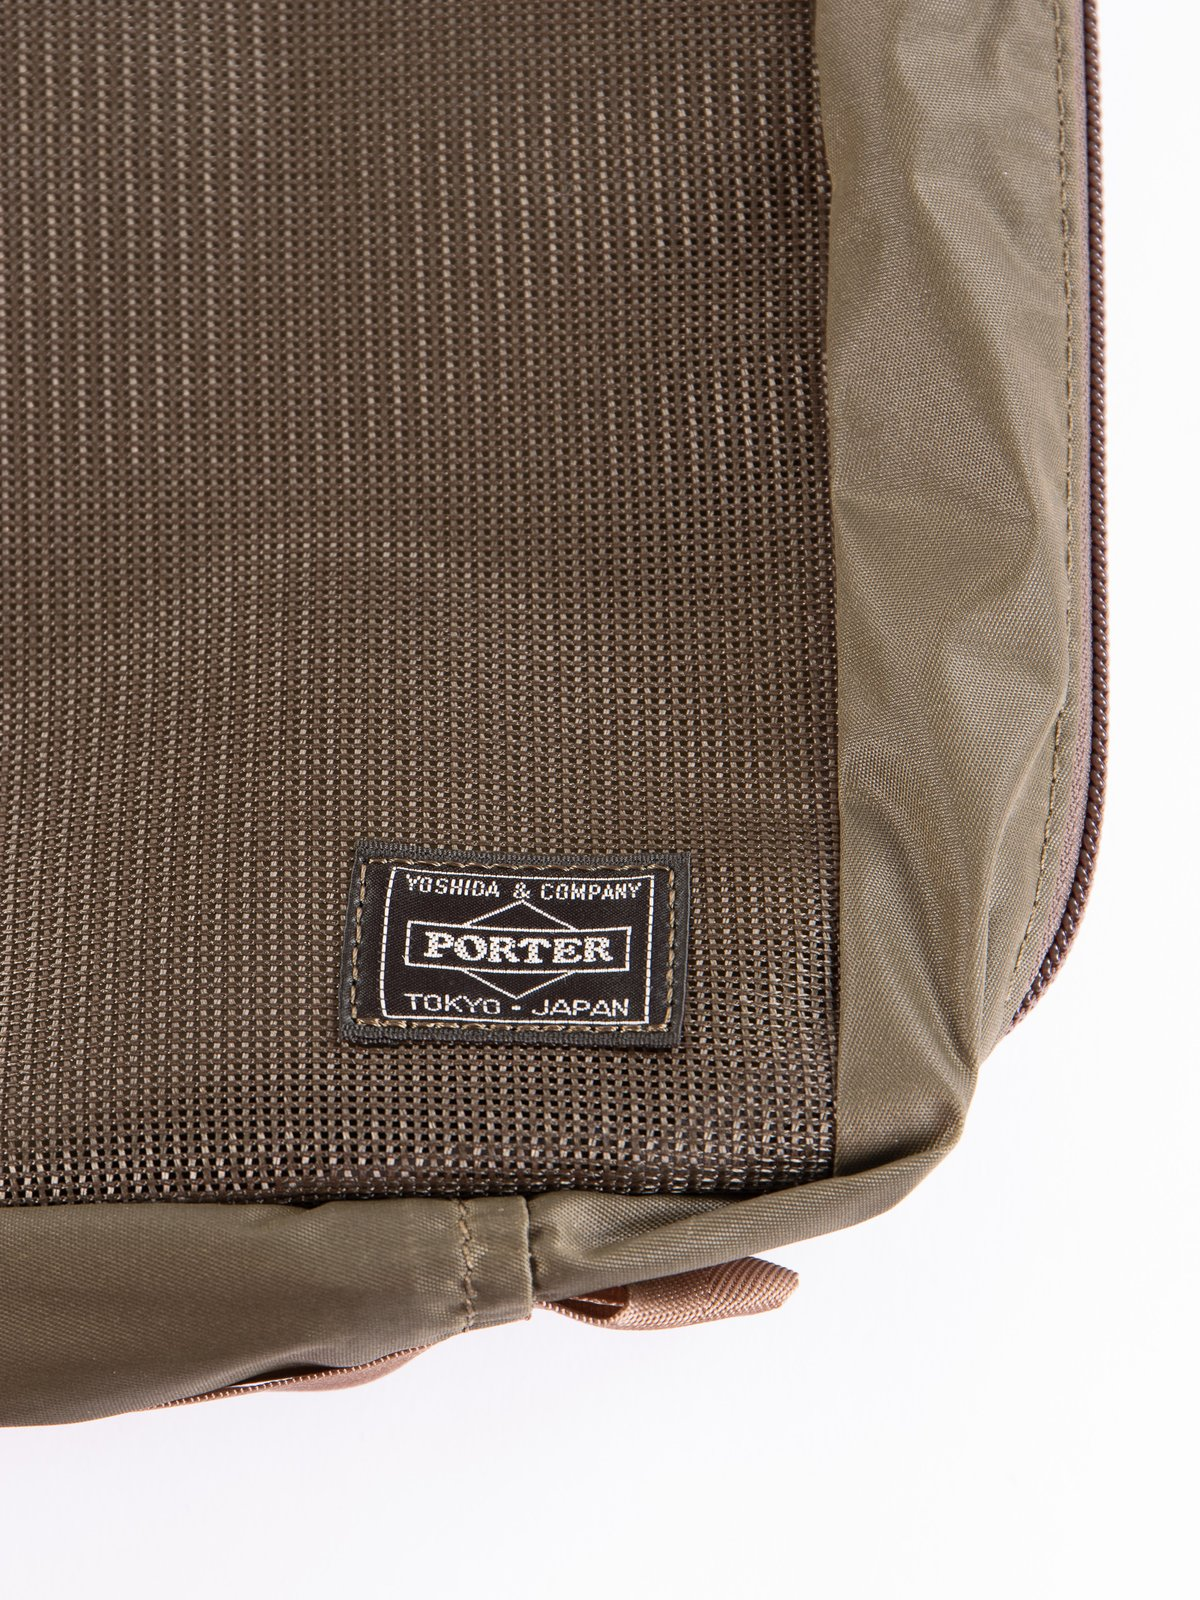 Olive Drab Snack Pack 09805 Pouch Medium - Image 2